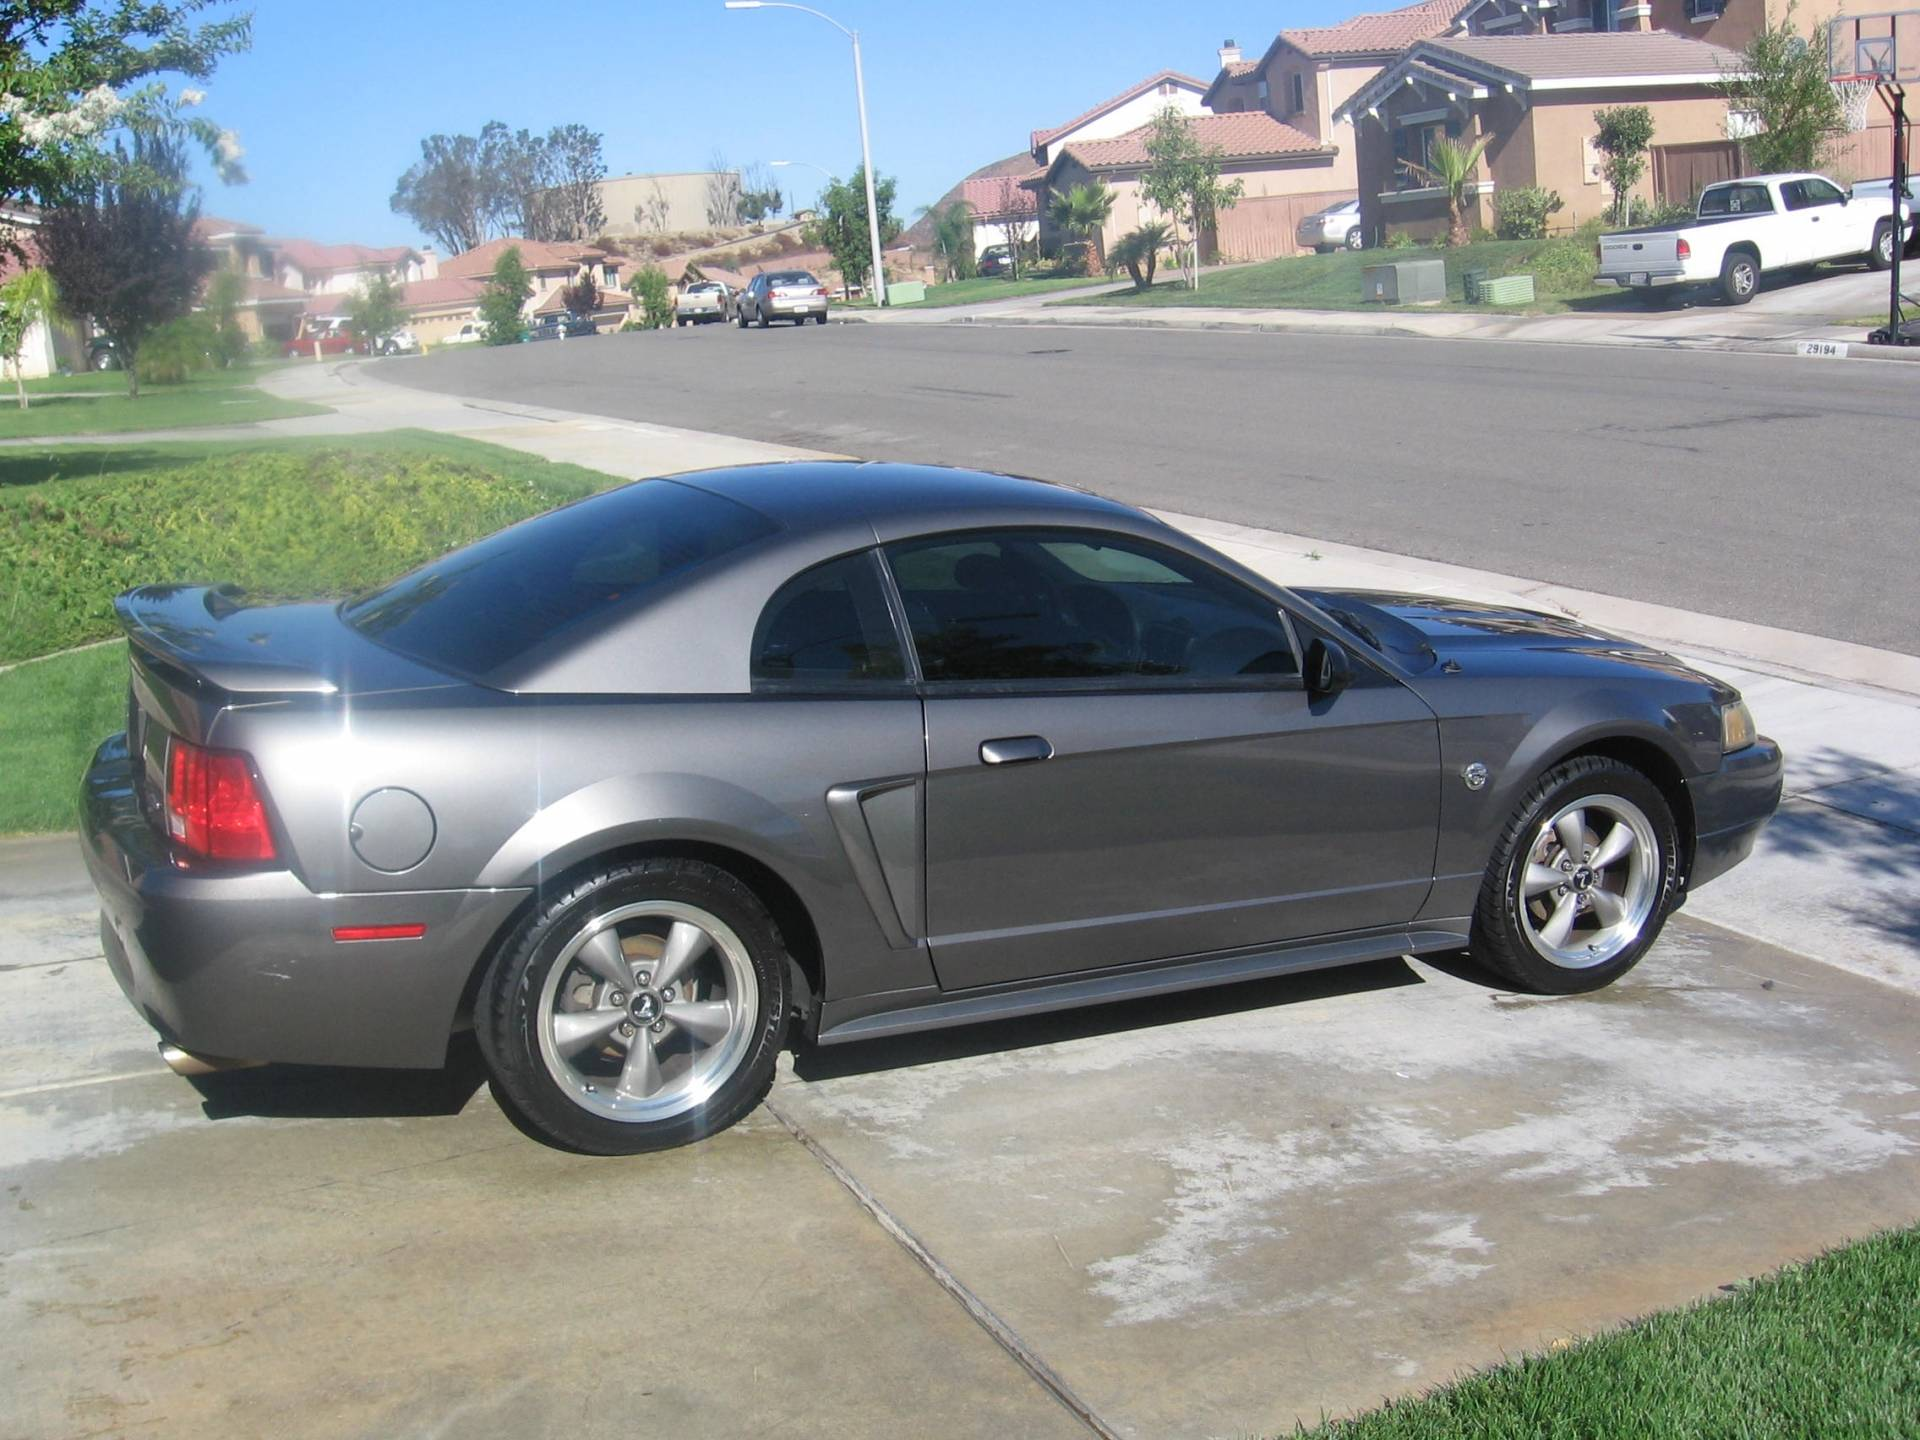 2004 mustang v6 40th anniversary bloodydecks. Black Bedroom Furniture Sets. Home Design Ideas